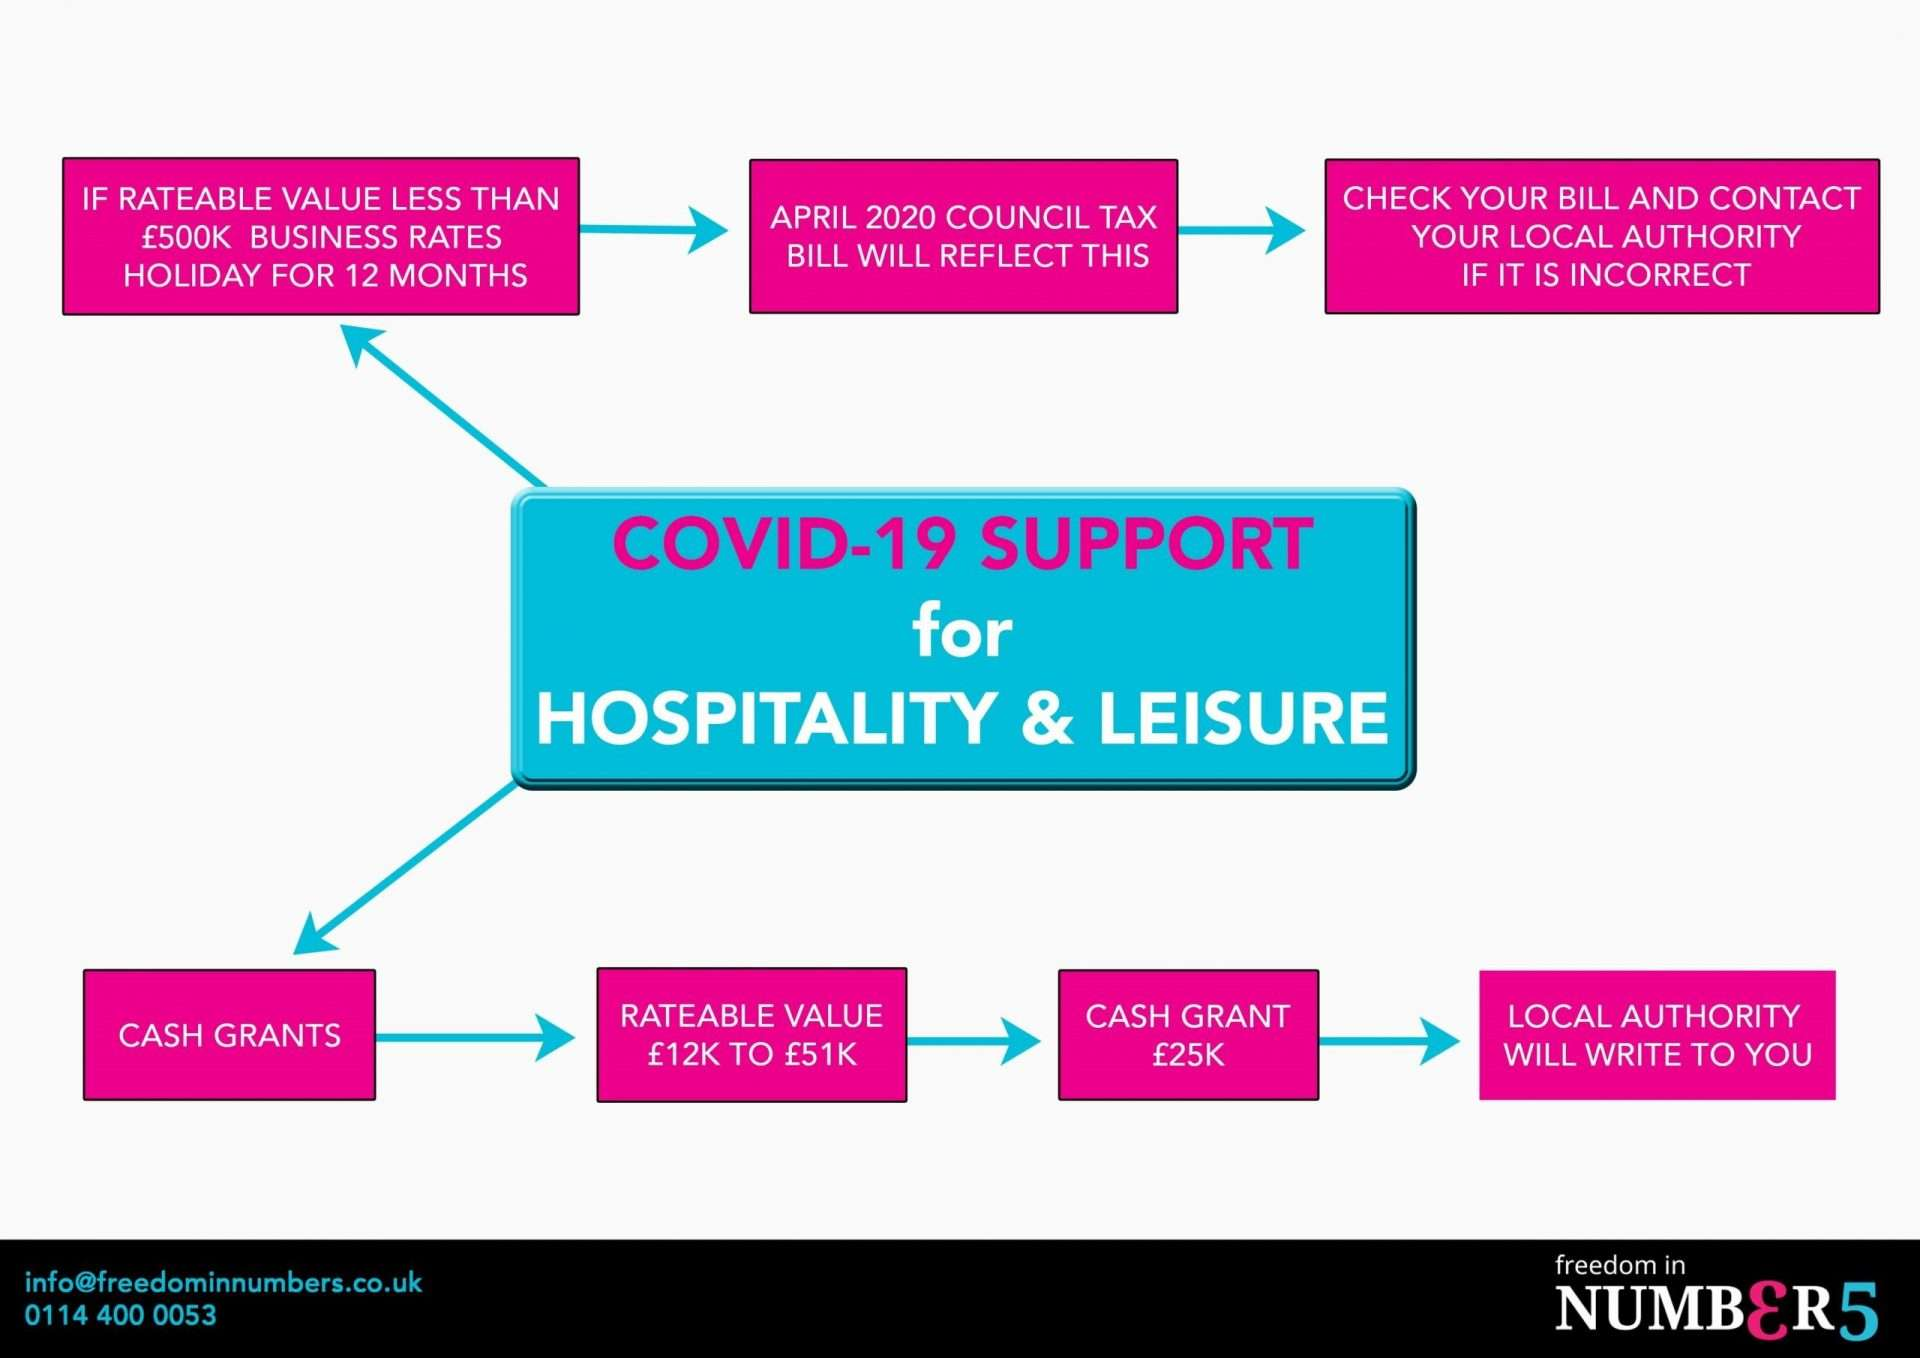 COVID-19 support hospitality & leisure businesses